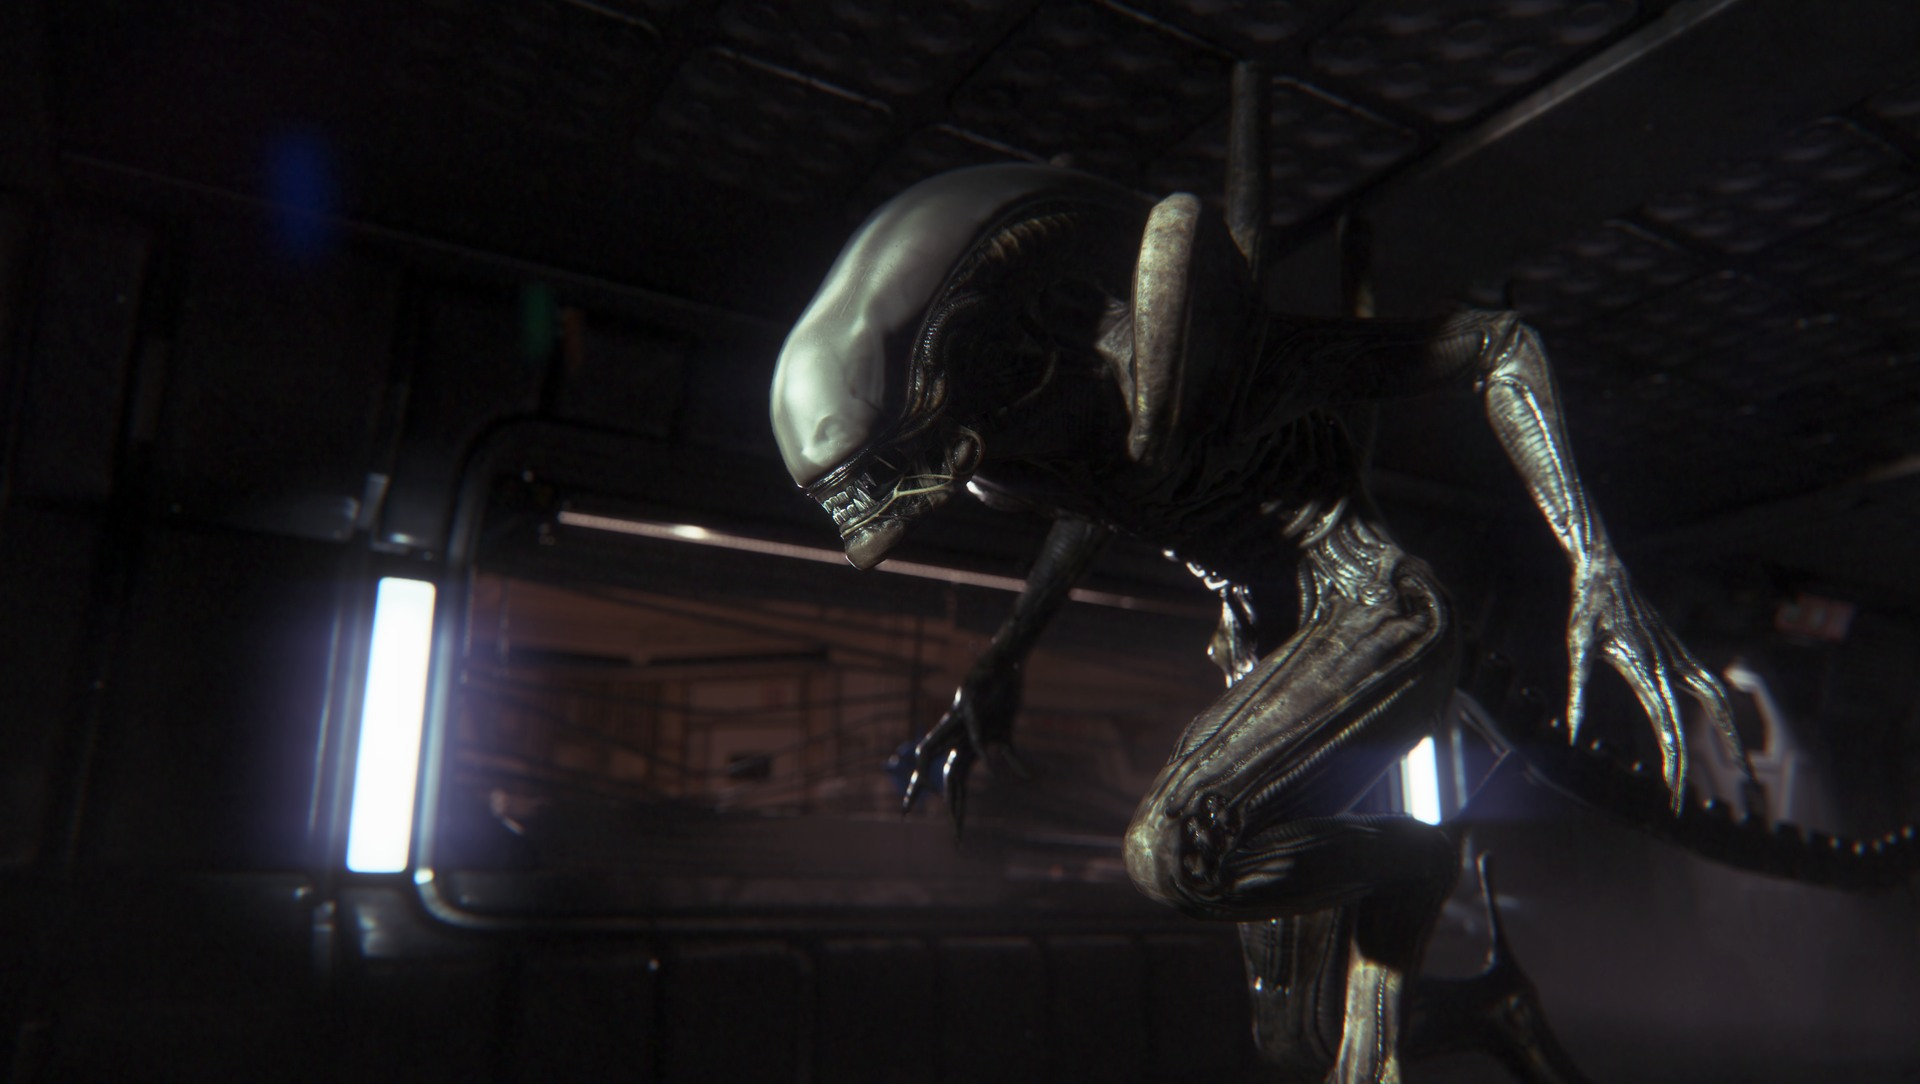 """Alien Isolation"" Mod Removes Alien - Now You See Him... Now You Don't"